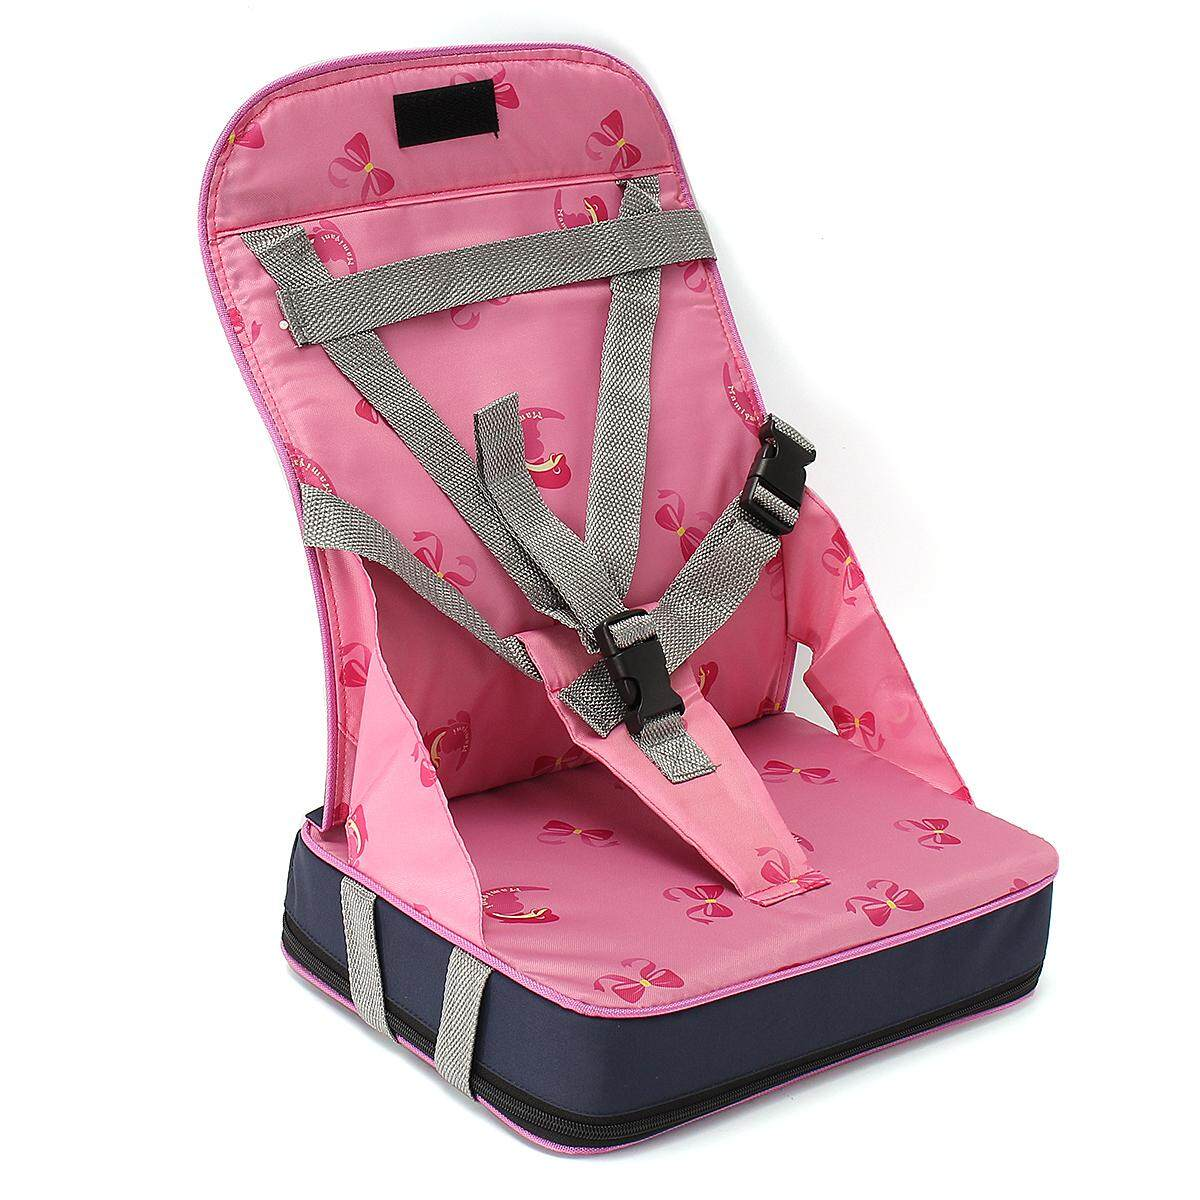 Where Can I Buy Portable Baby Travel High Chair Dining Feeding Chair Foldable Kids Booster Seat Intl